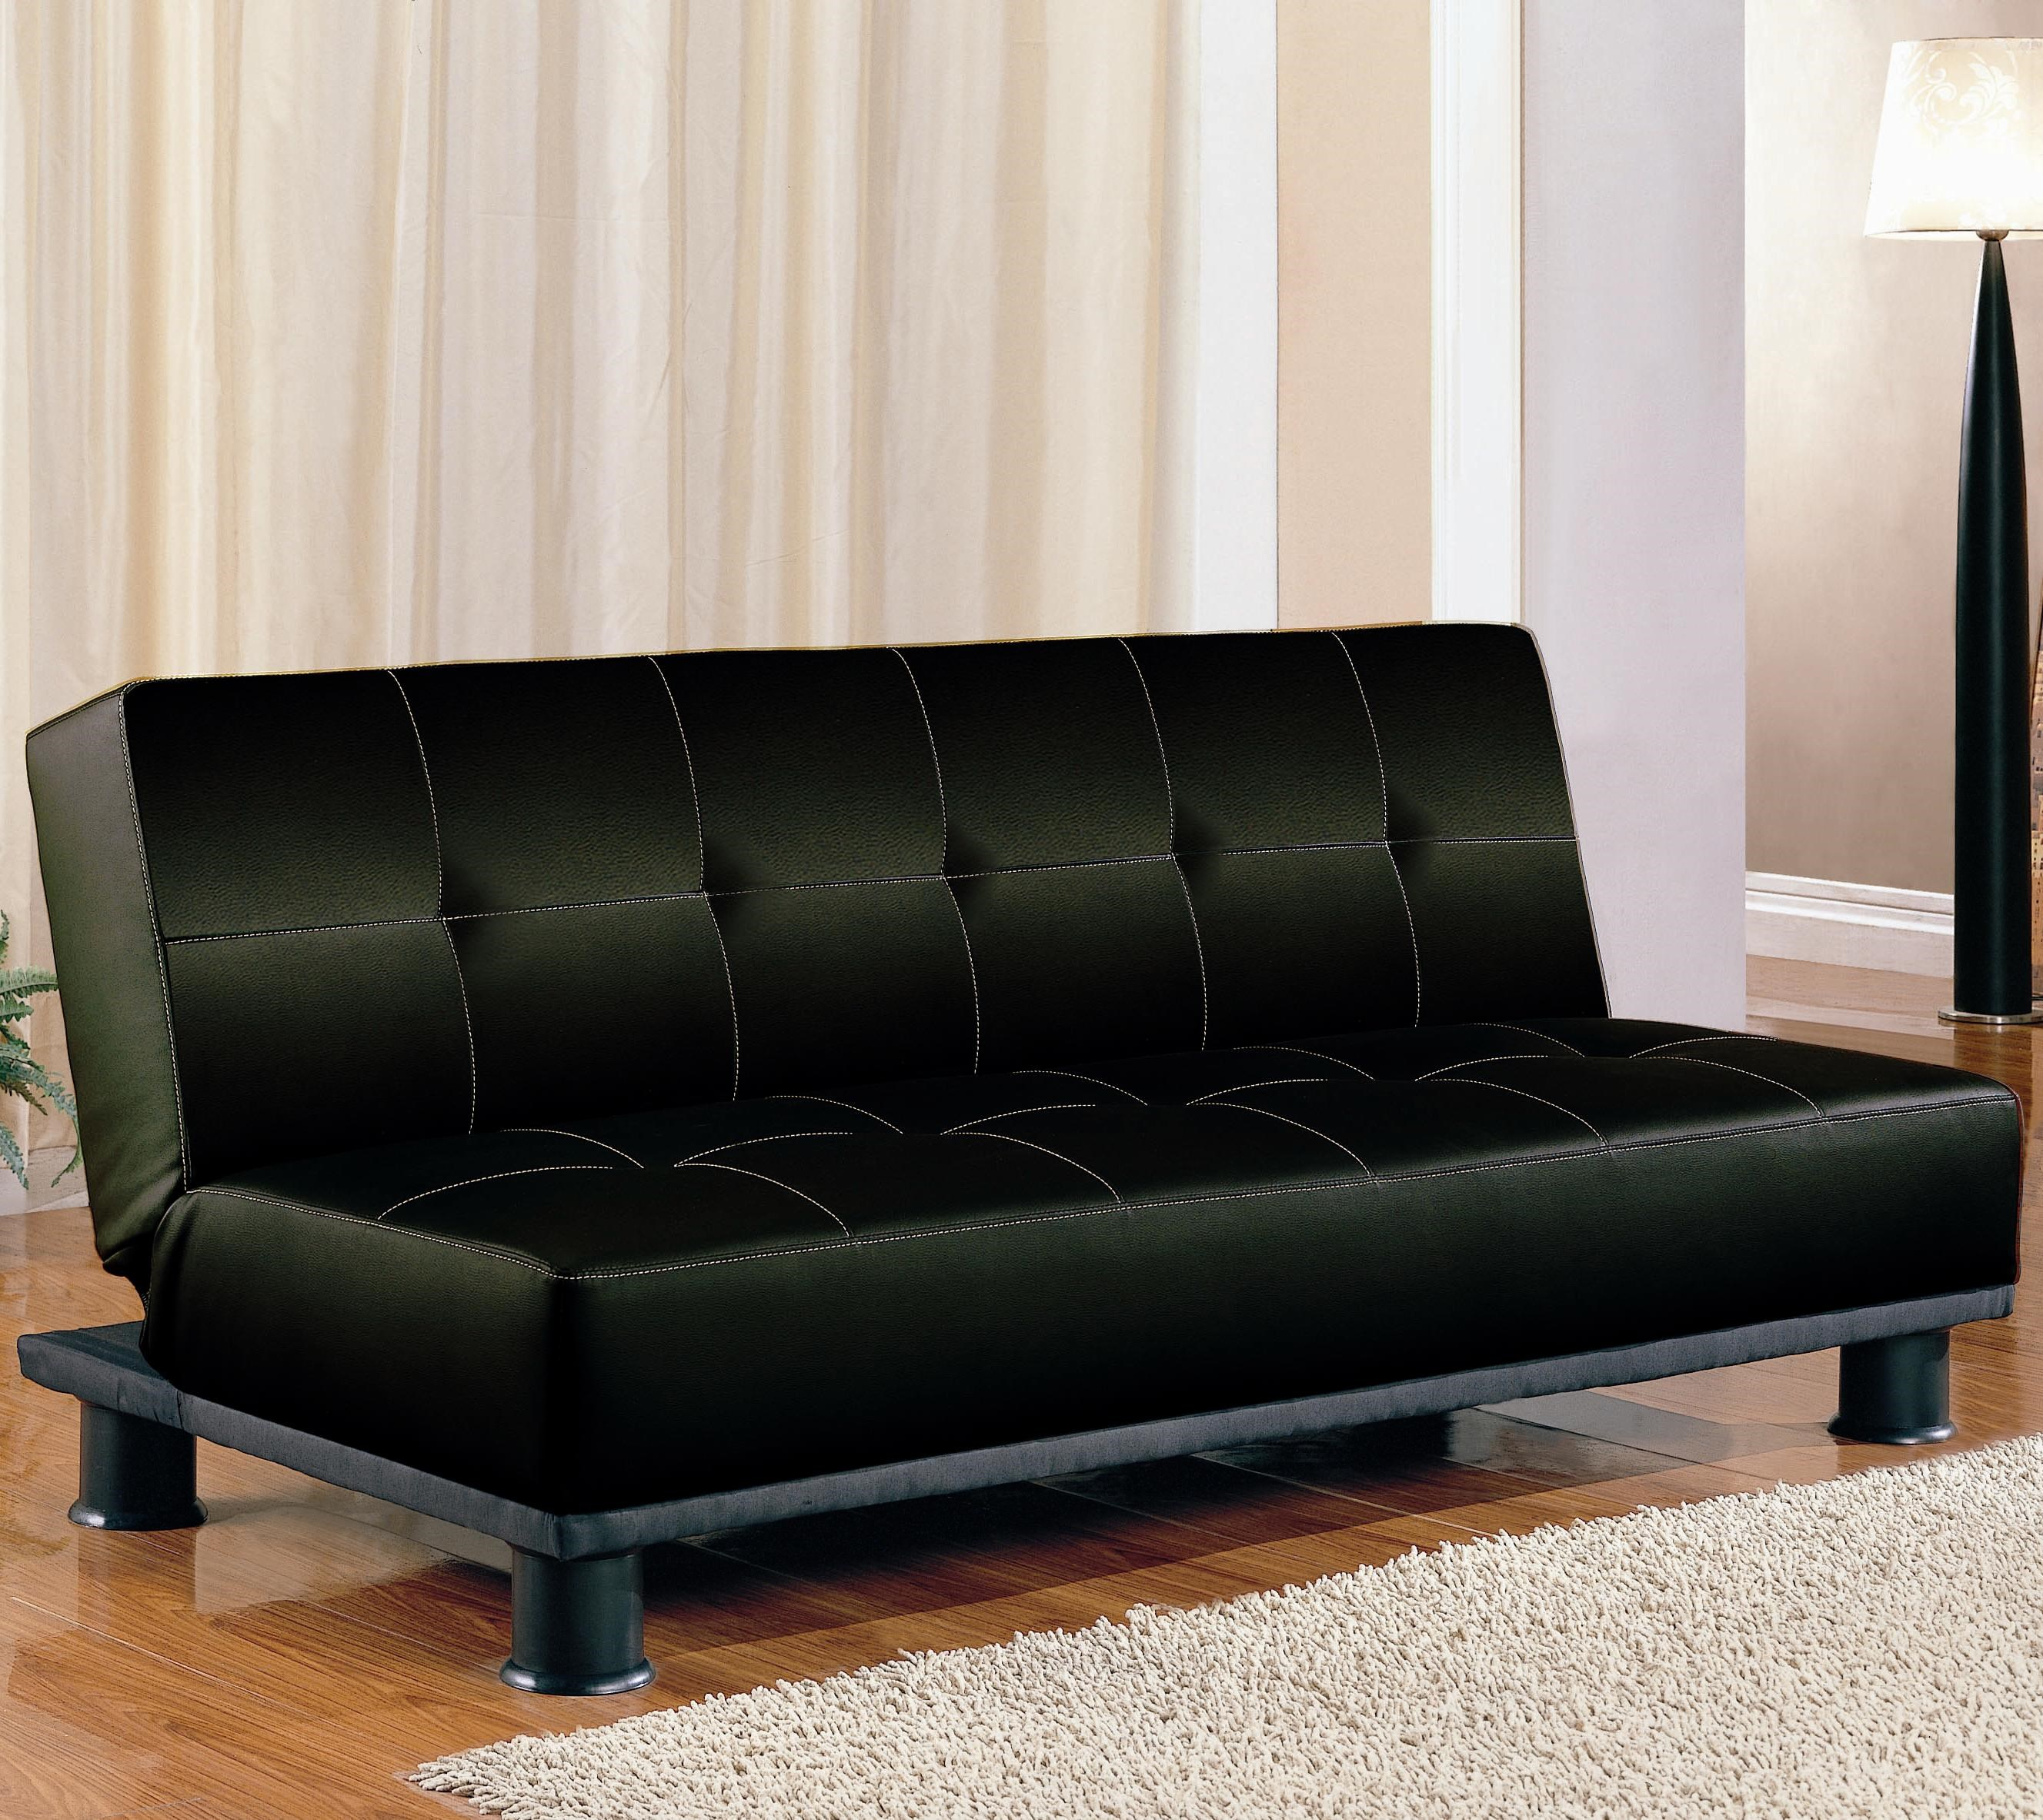 Futon Nice Sofa Beds And Futons Contemporary Armless Convertible Sofa Bed By Coaster At Dunk Bright Furniture